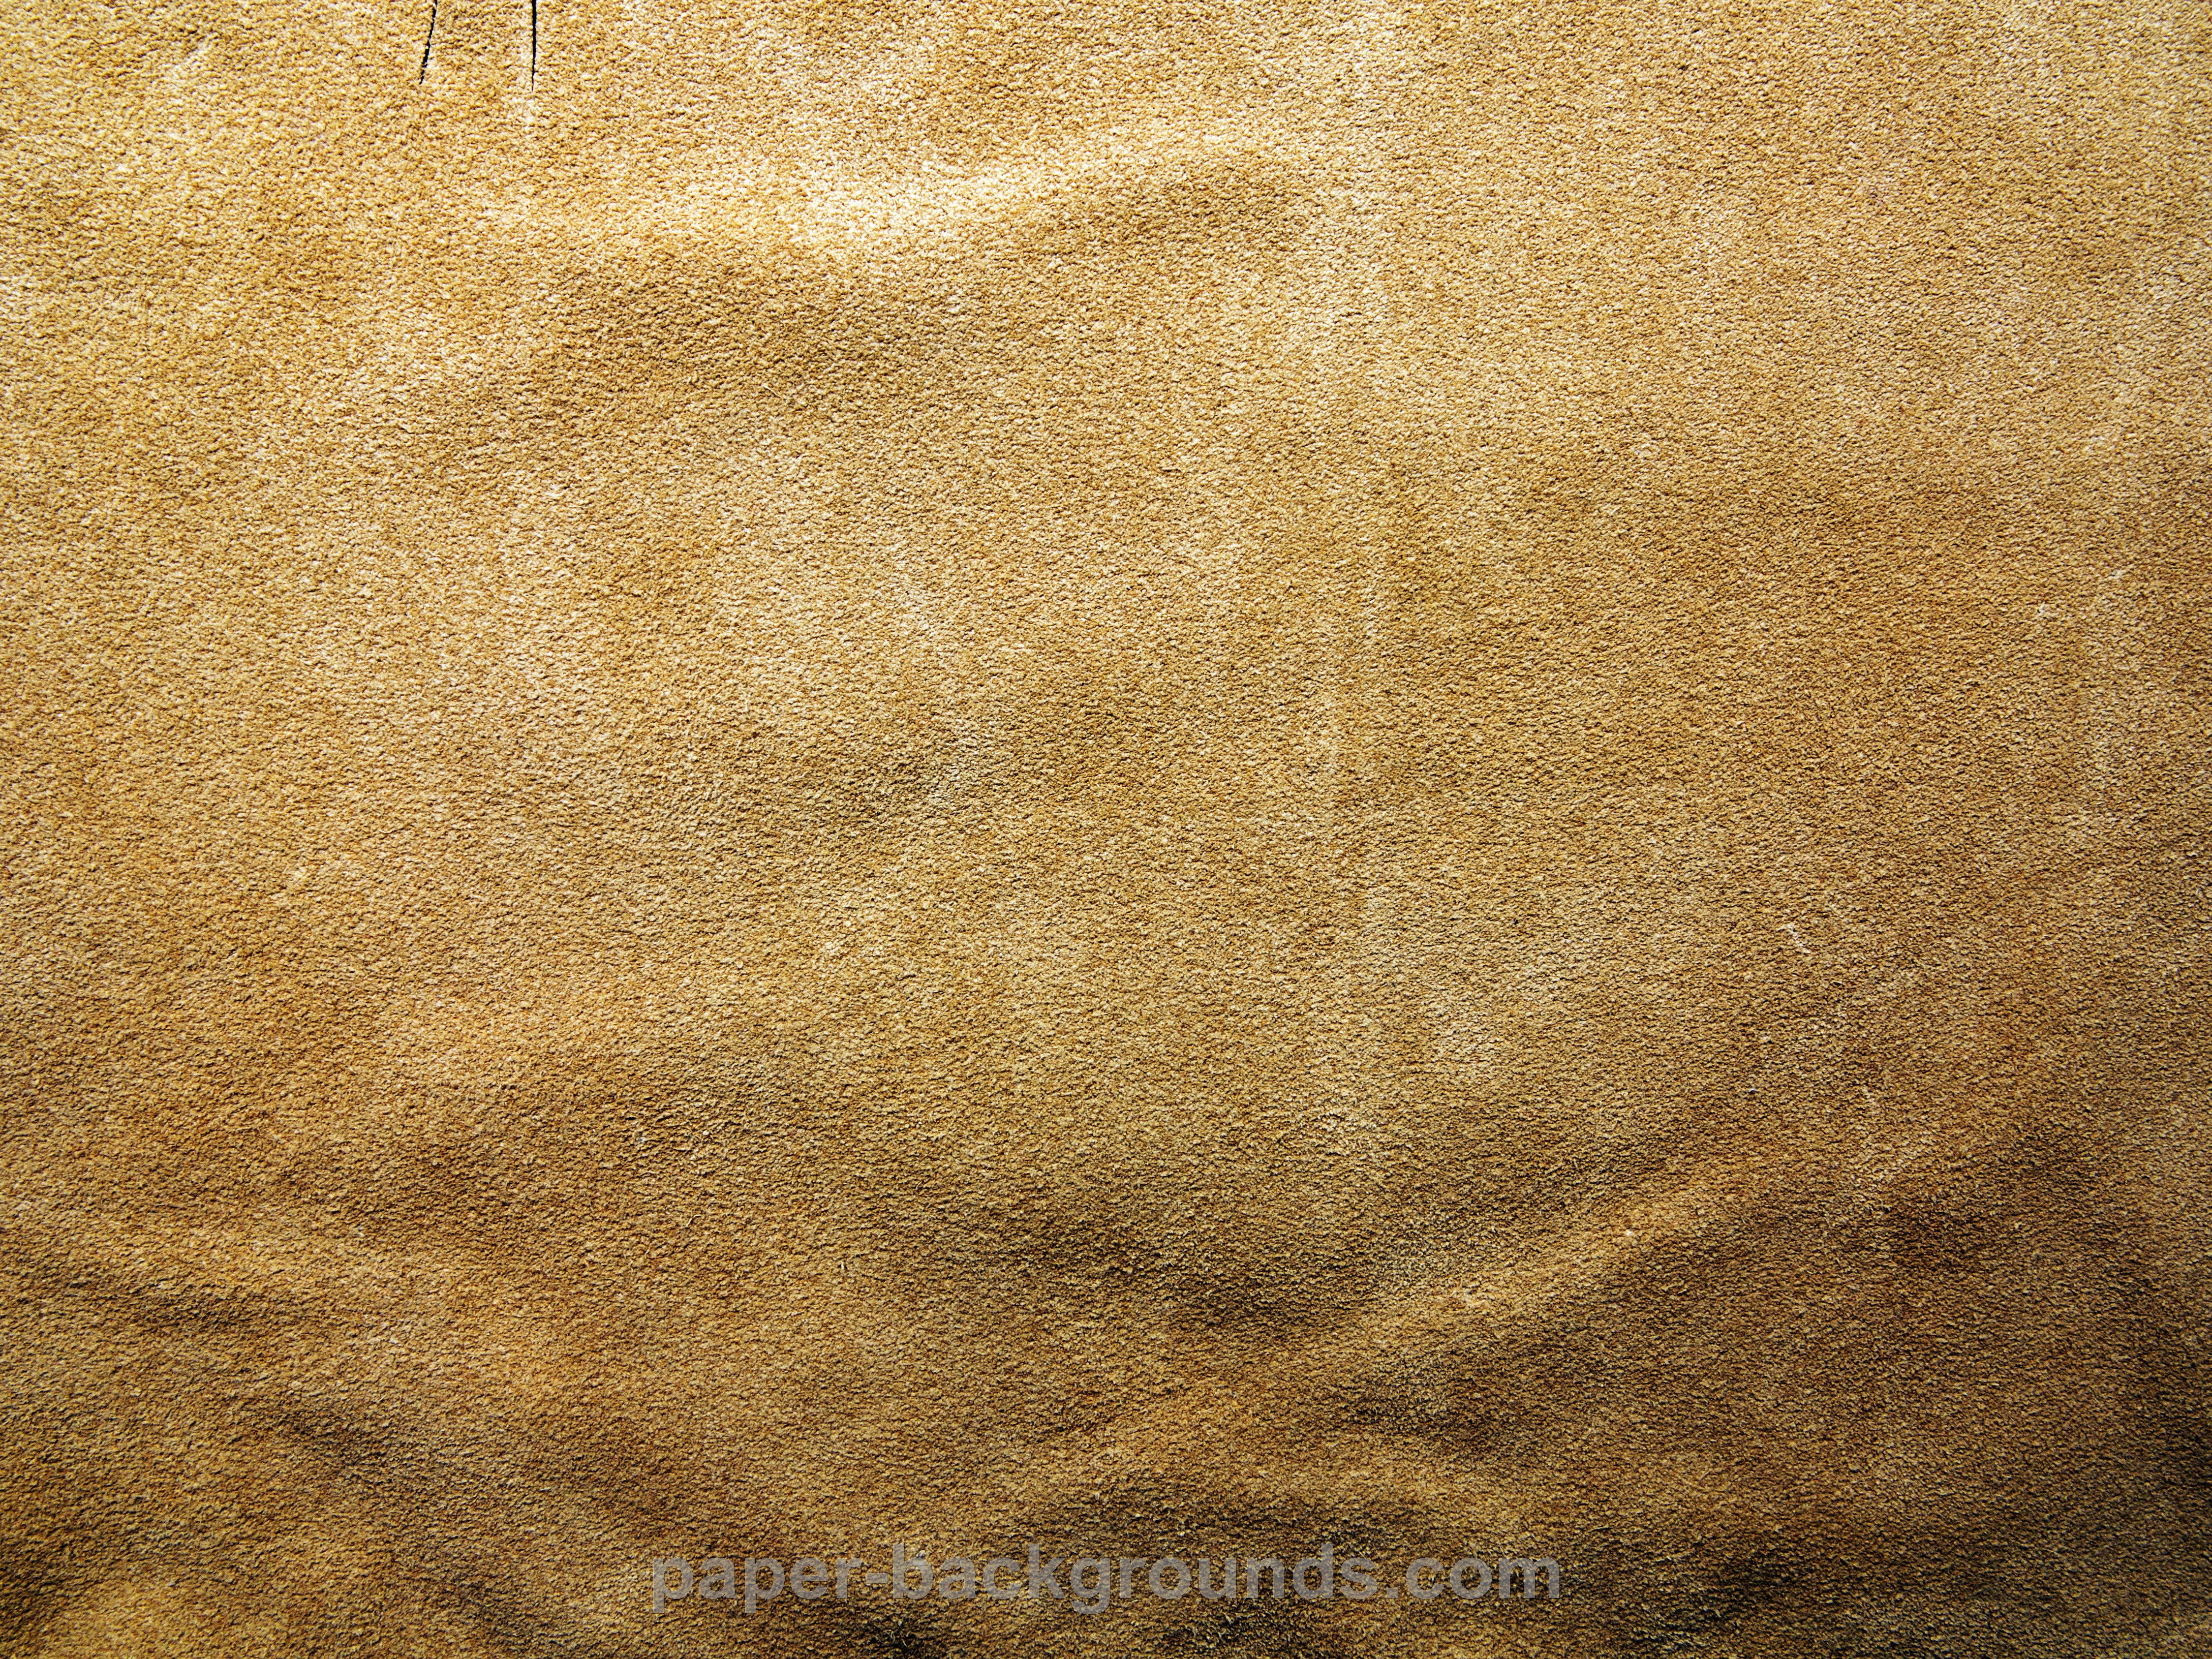 brown-grunge-soft-leather-texture